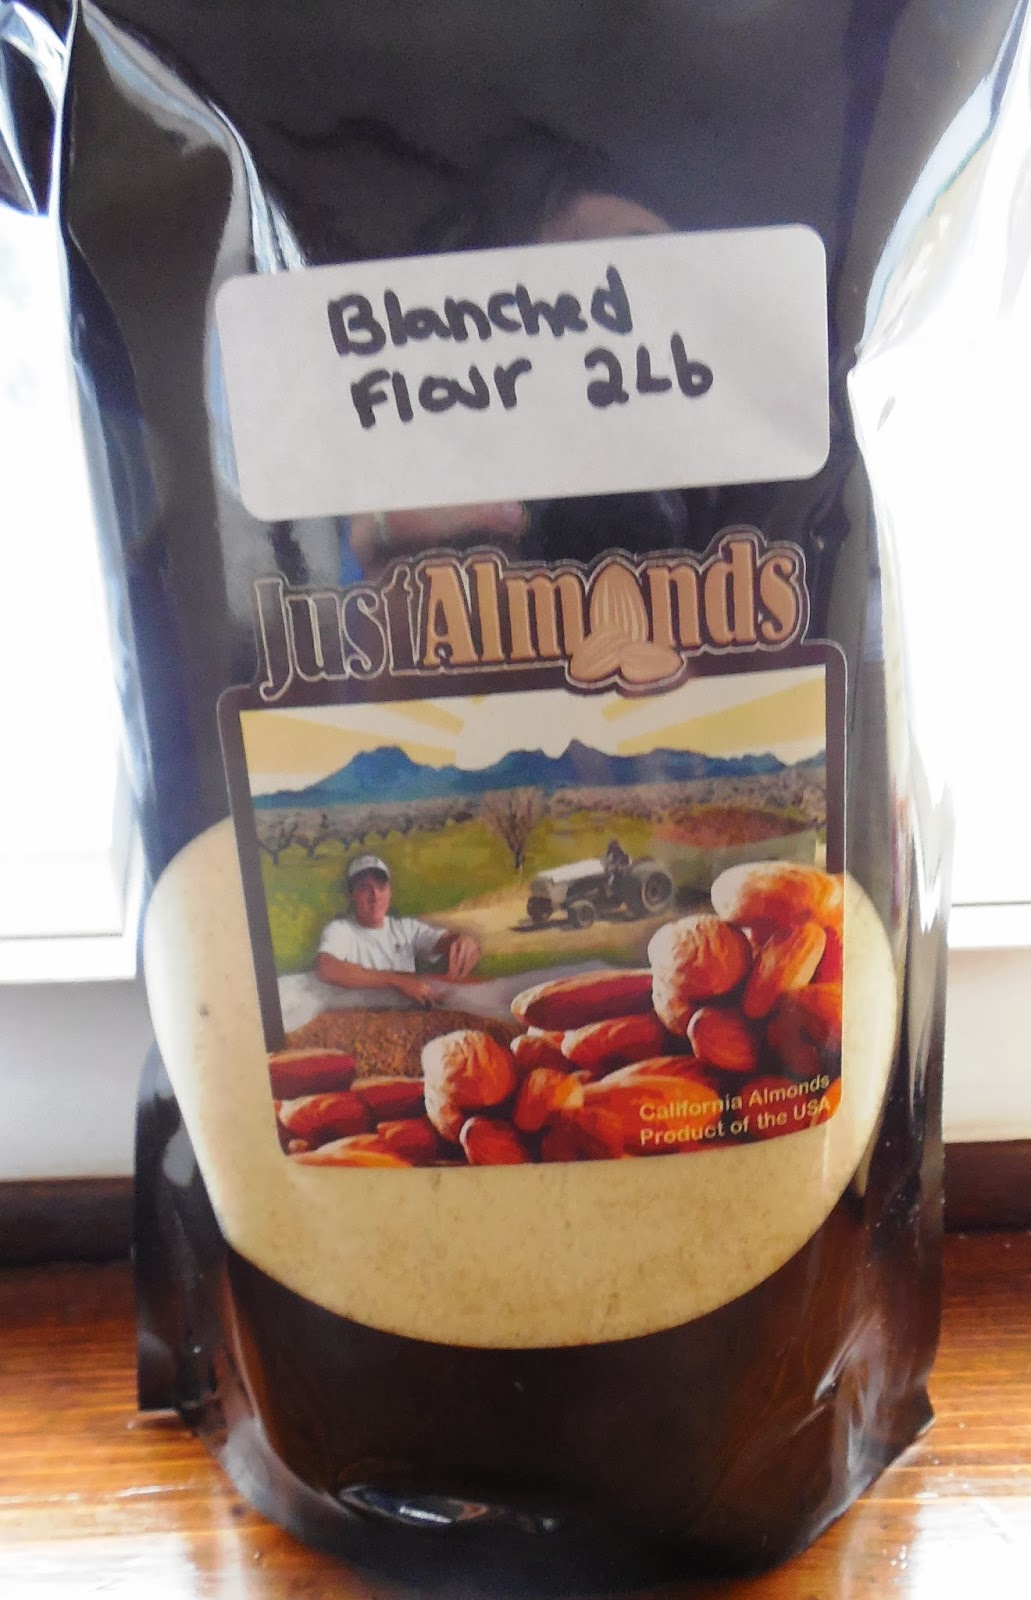 Just Almonds Flour